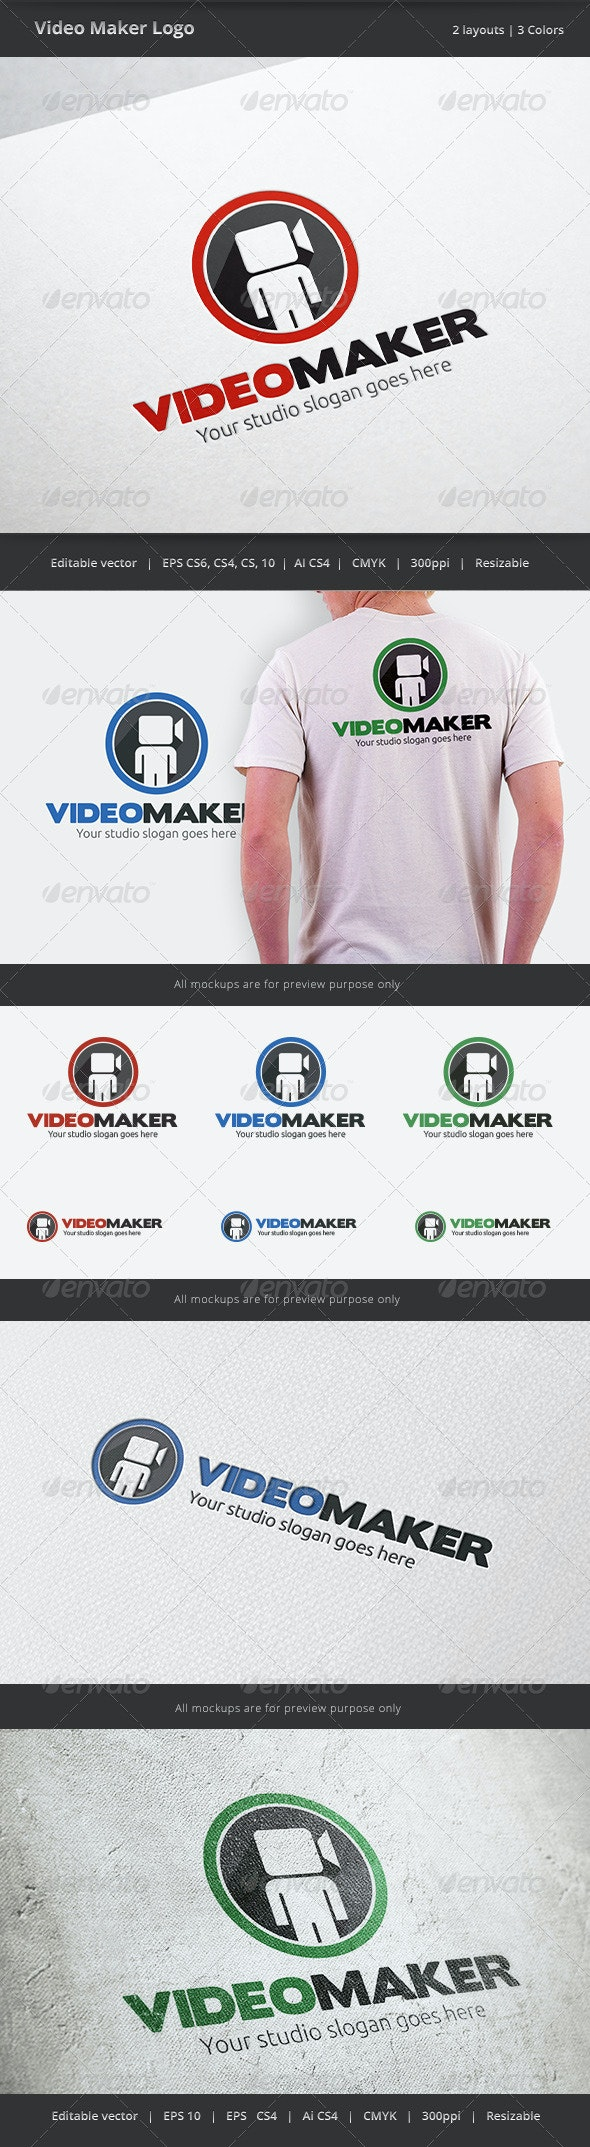 Video Maker Logo - Symbols Logo Templates